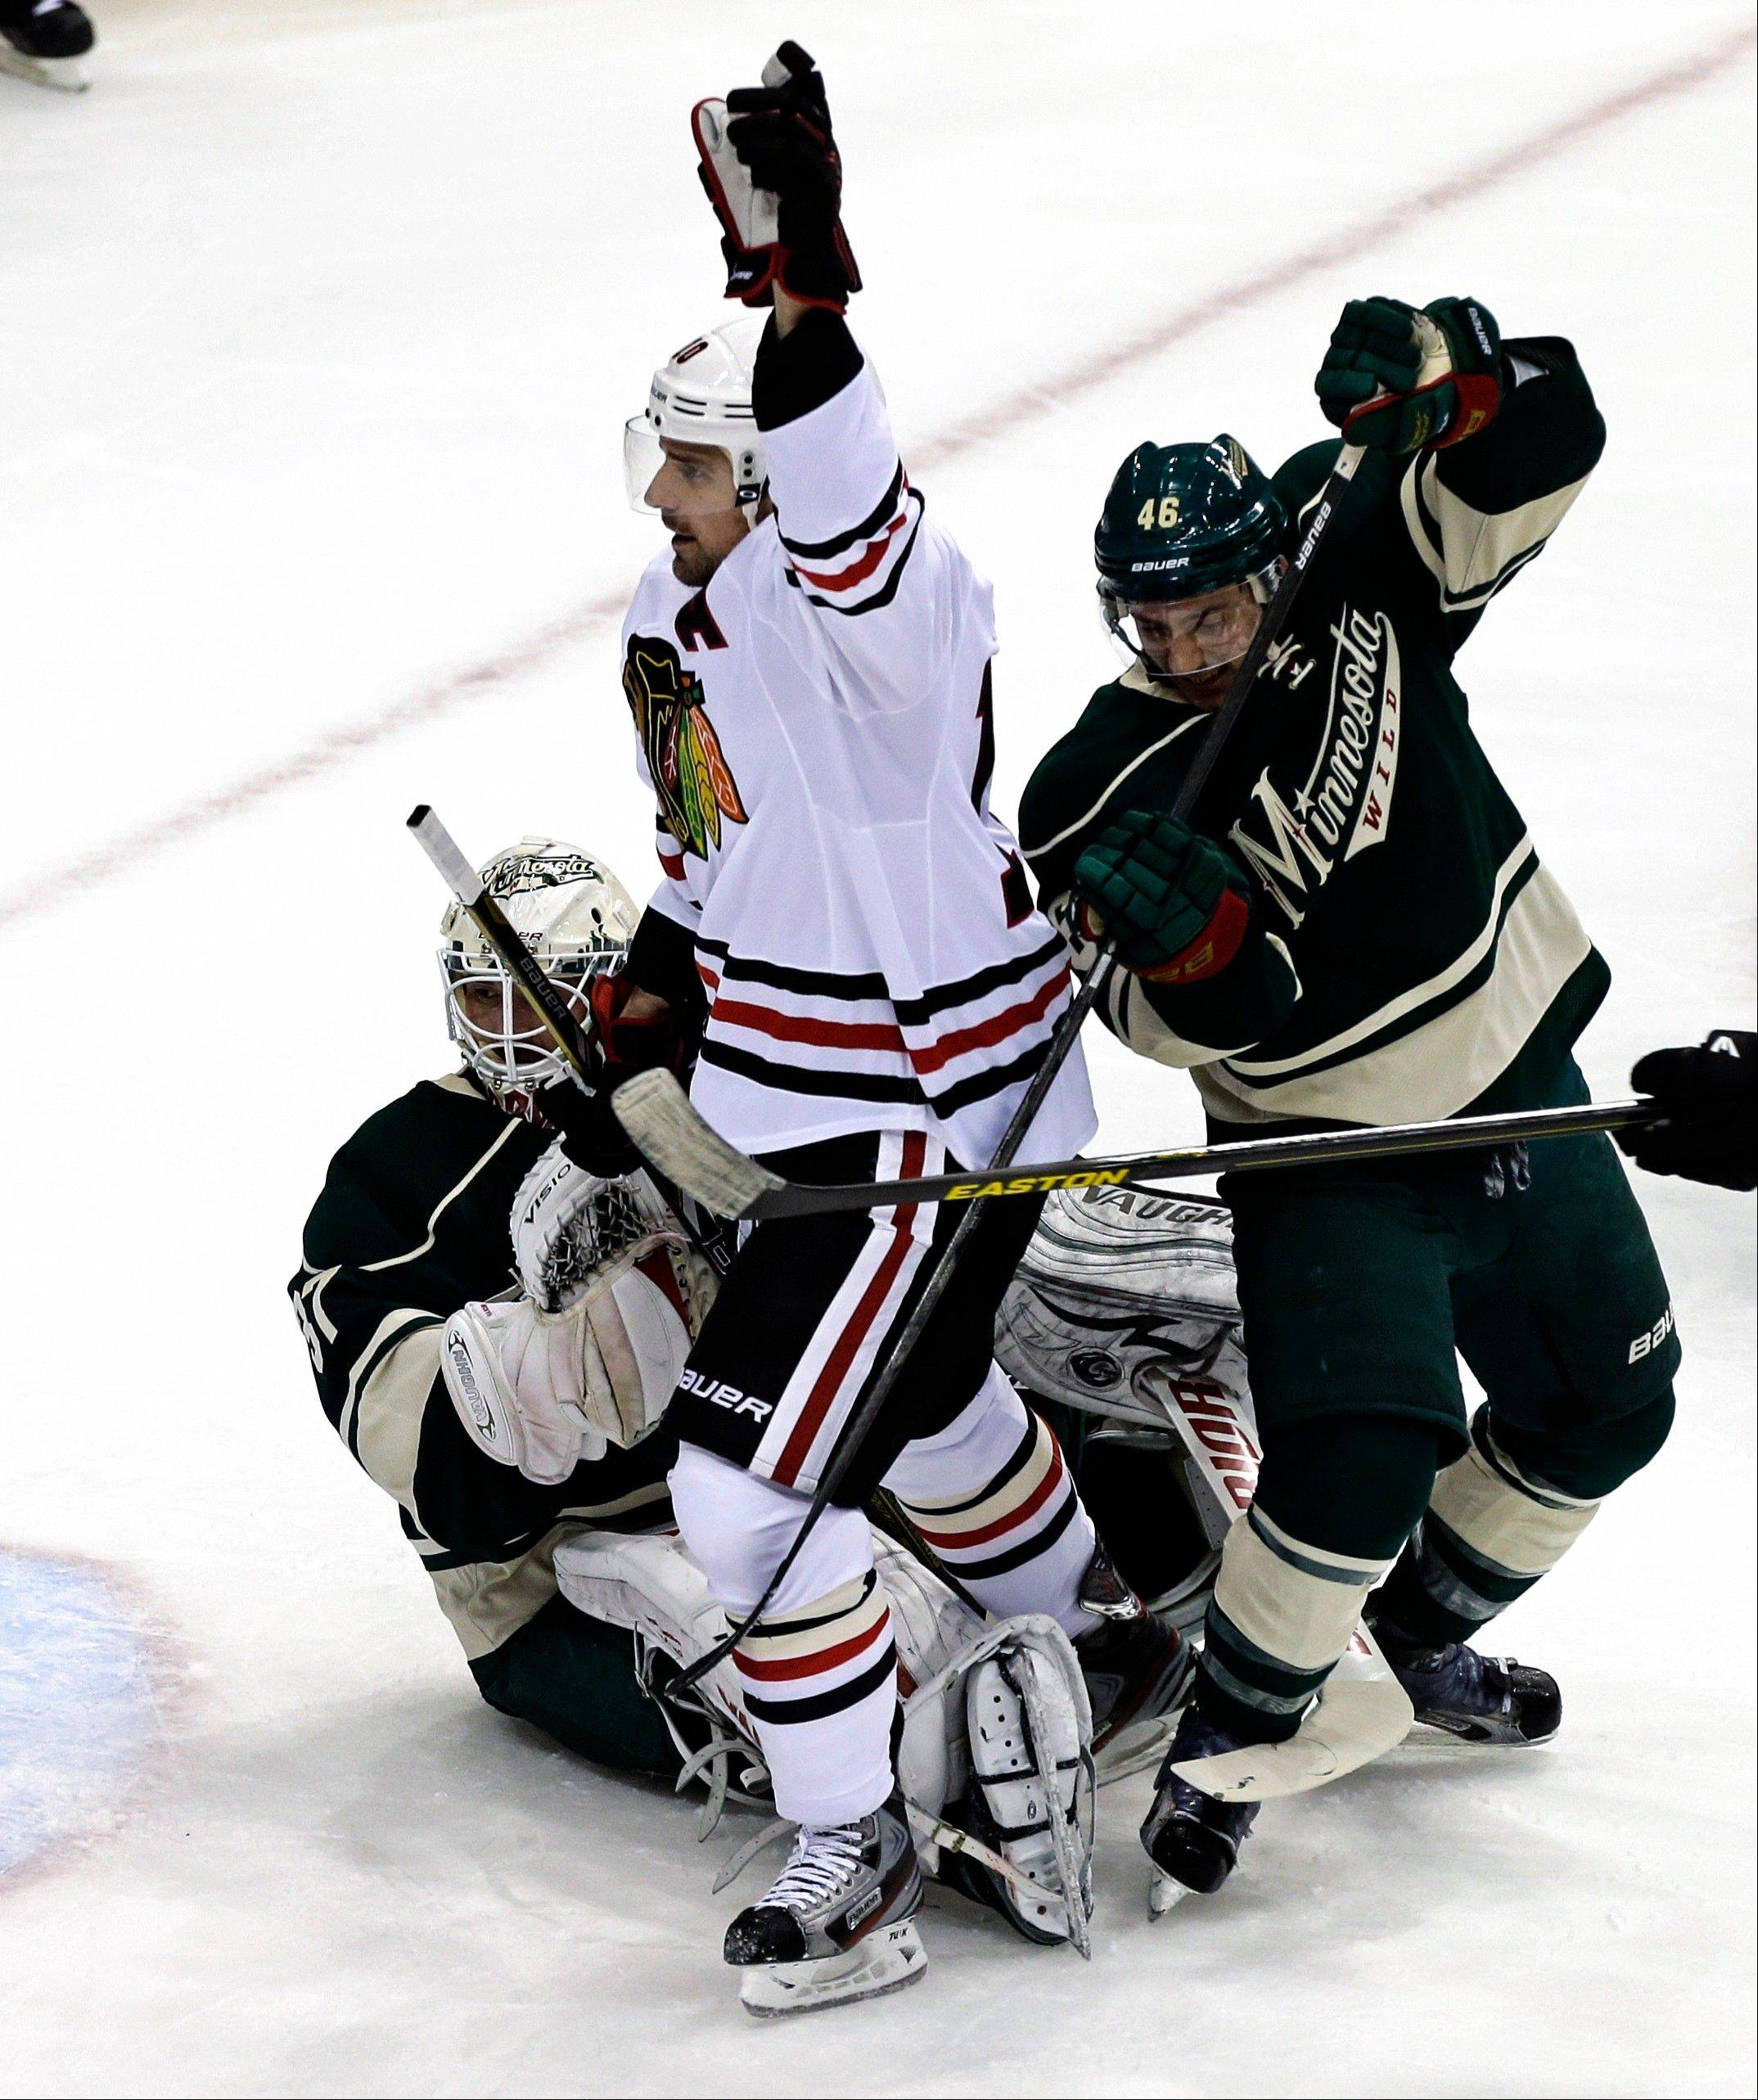 The Blackhawks' Patrick Sharp, middle, celebrates his goal off Minnesota Wild goalie Josh Harding in the first period of Game 4 on Tuesday night. At